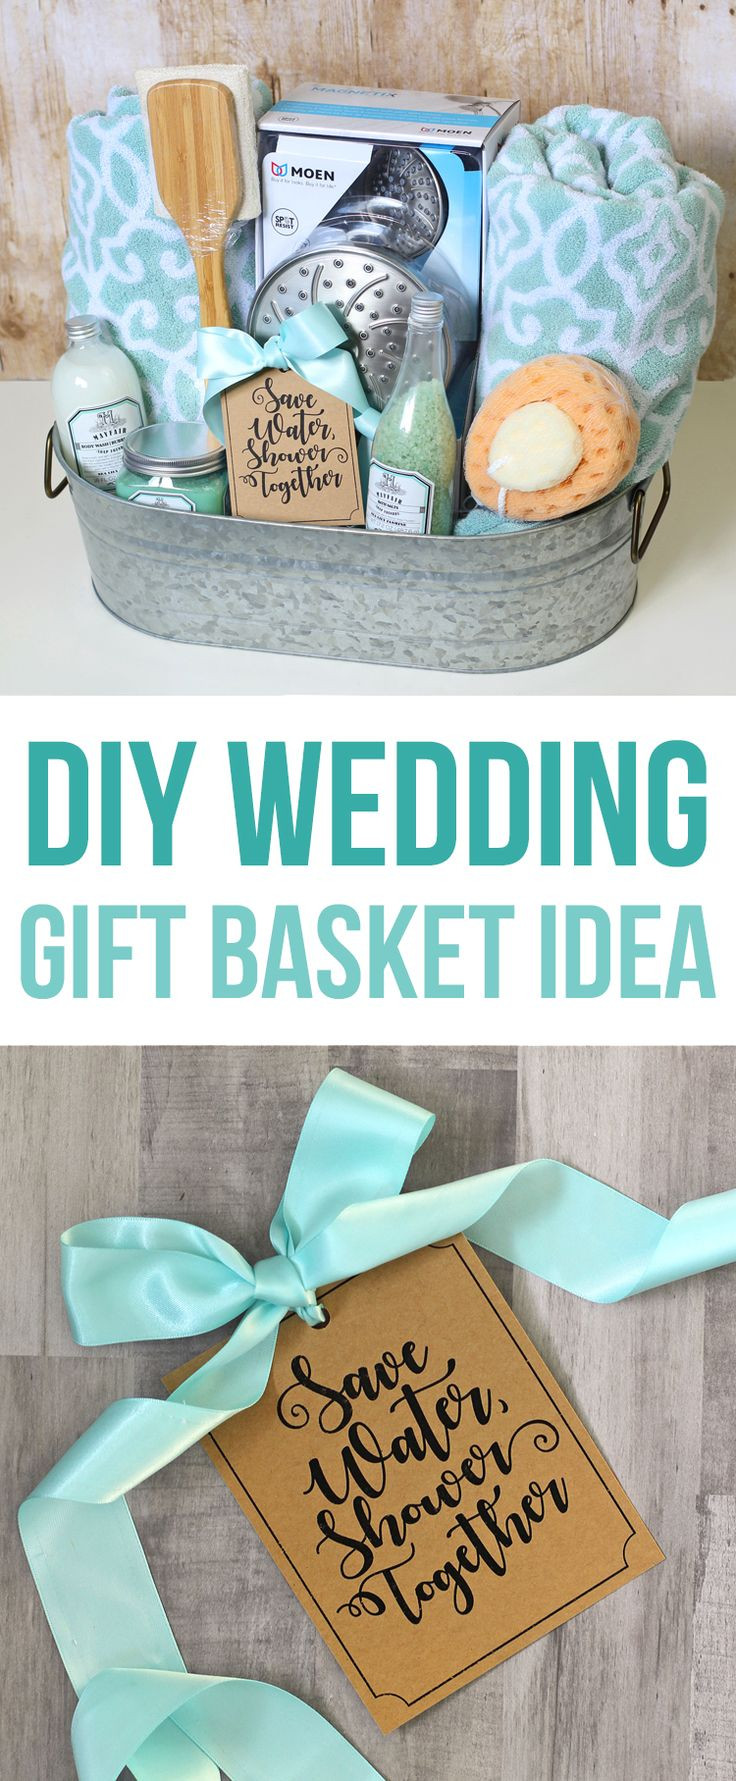 Best ideas about DIY Wedding Gift . Save or Pin Best 25 Luxury shower ideas on Pinterest Now.